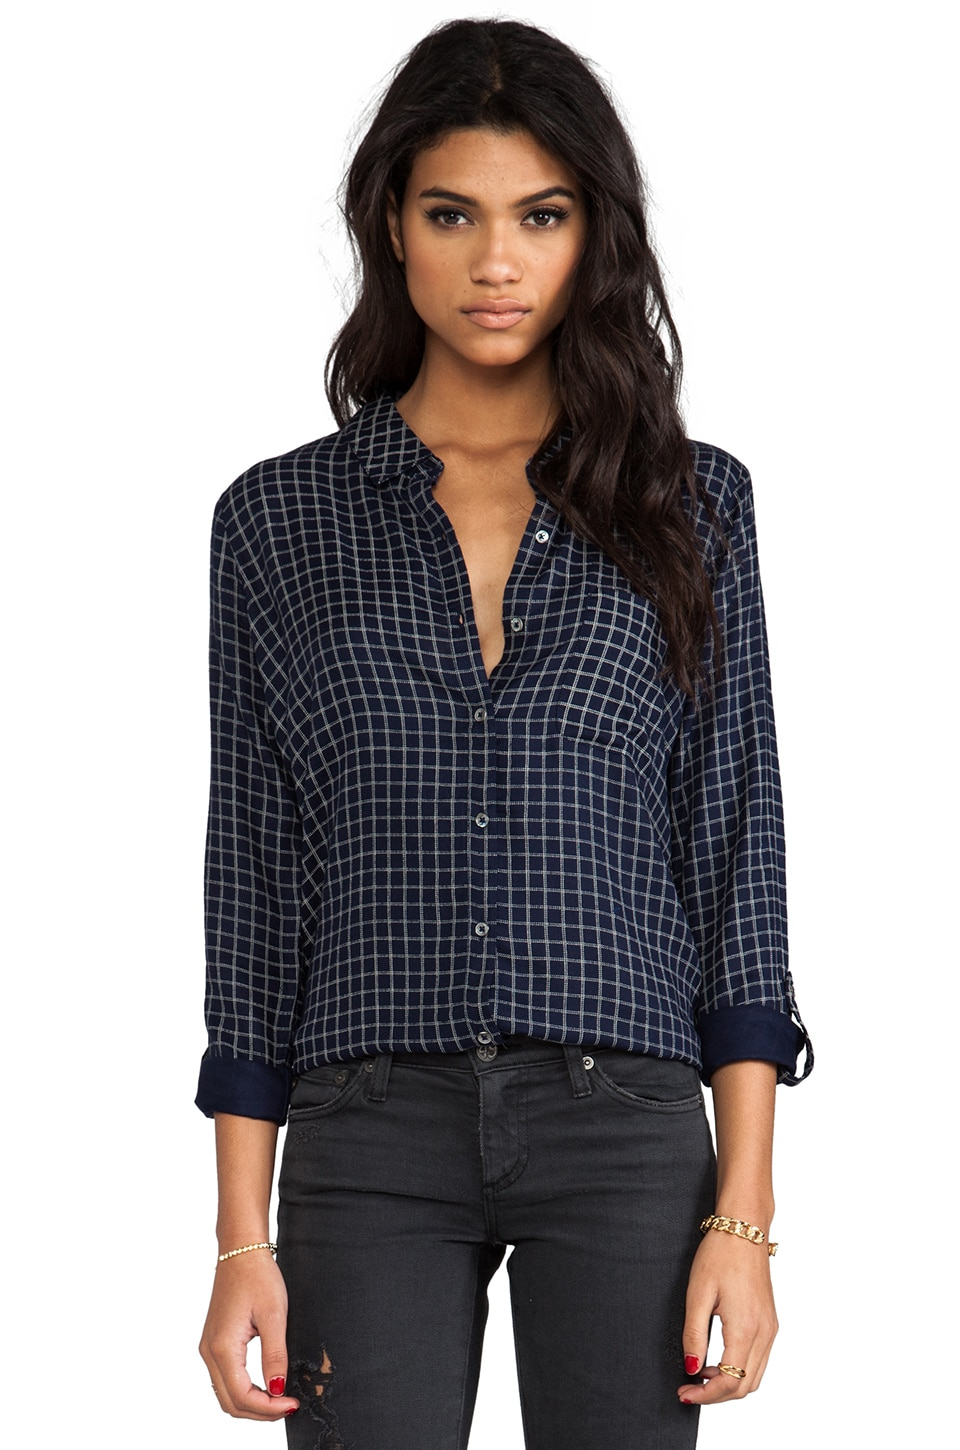 Soft Joie Anabella Plaid Button Down in Peacoat